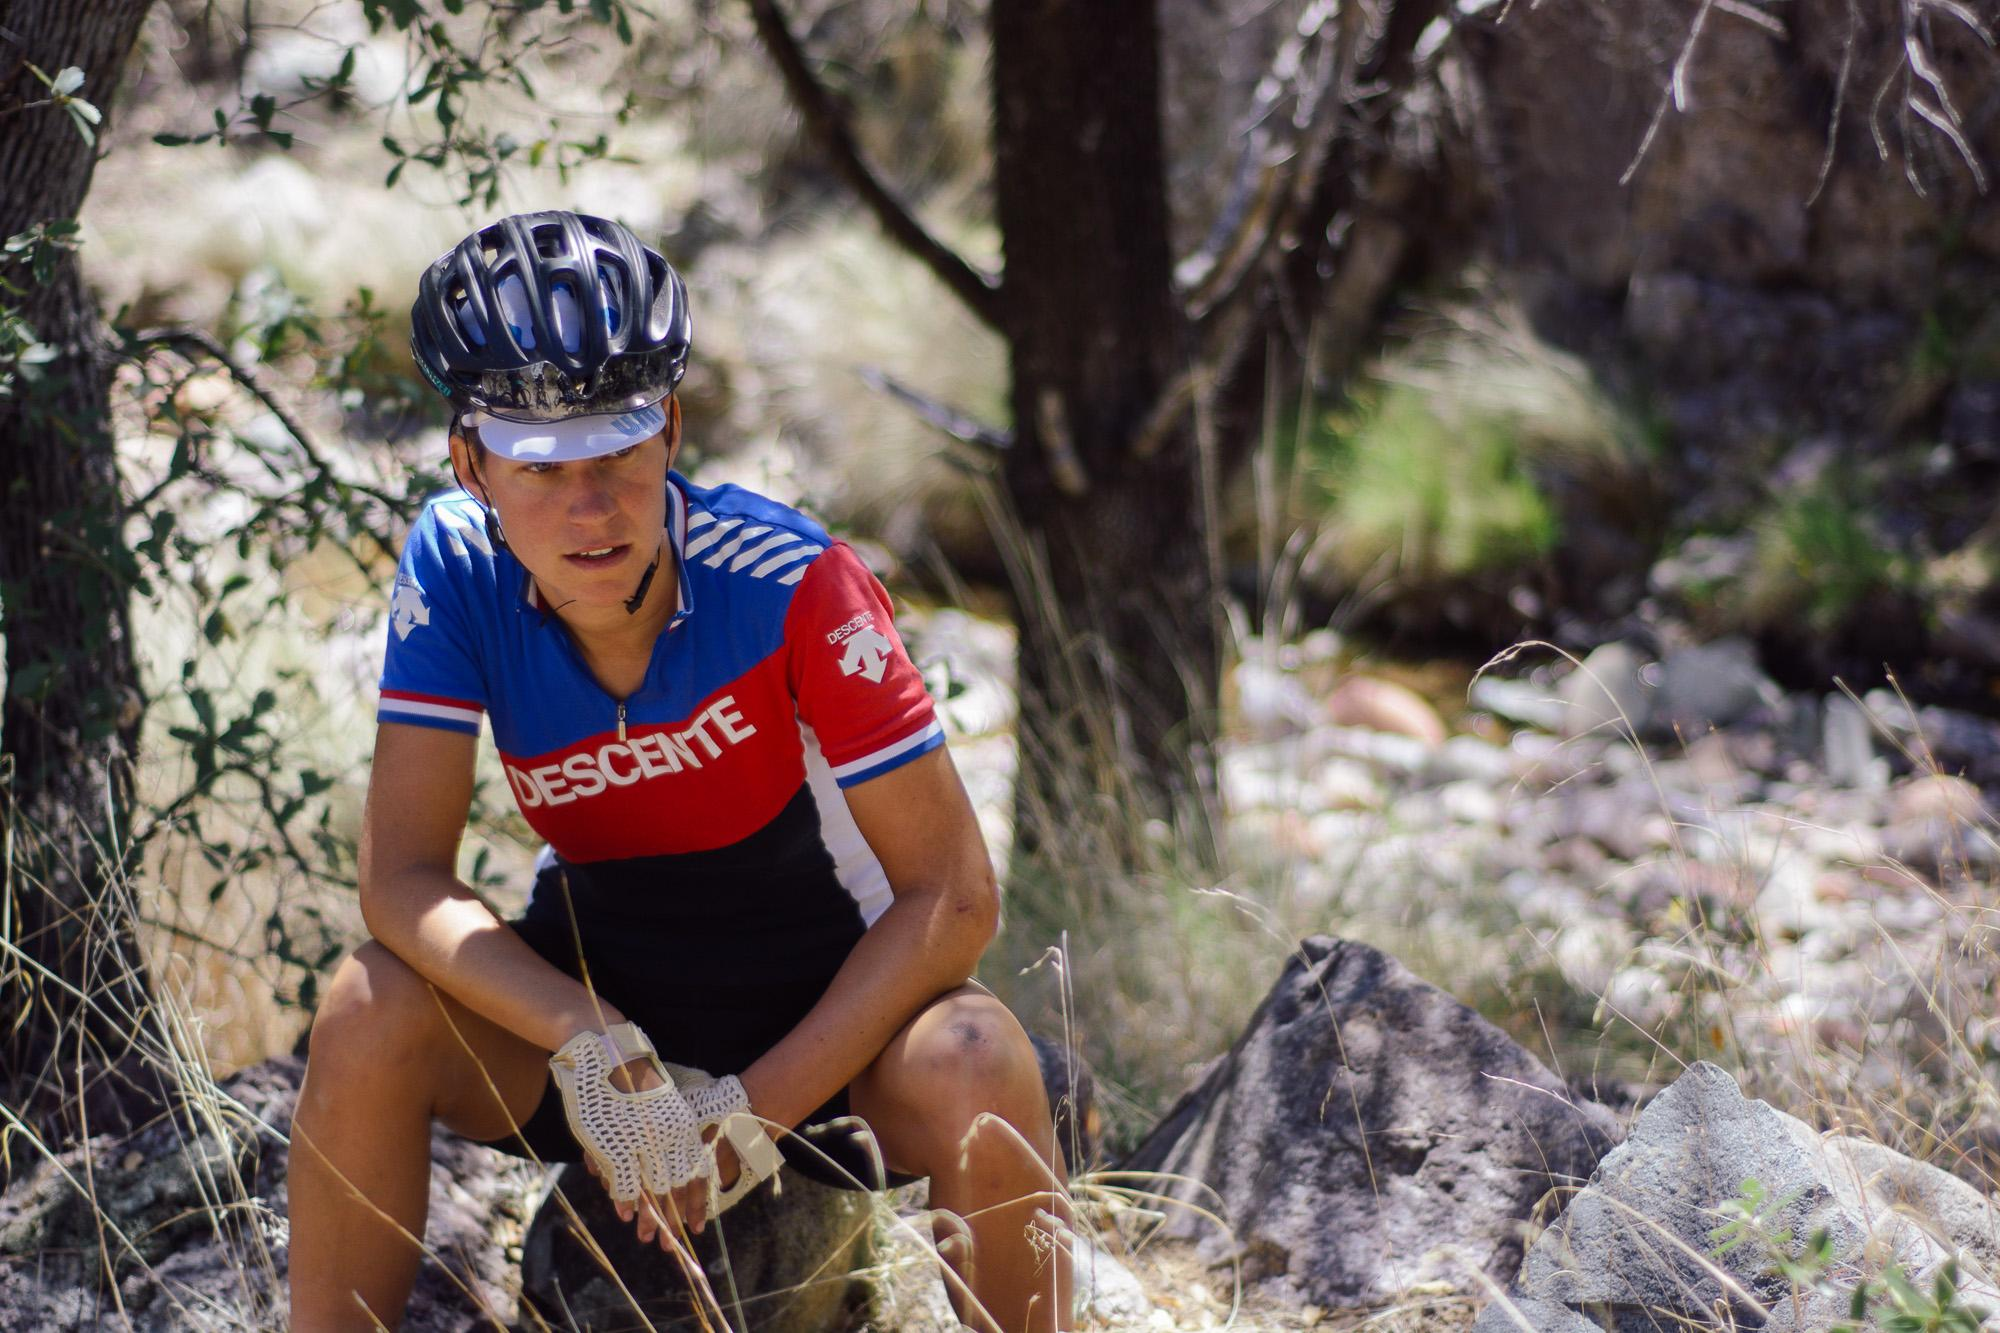 Pedaling in Anger: Training Camp Camping Arizona